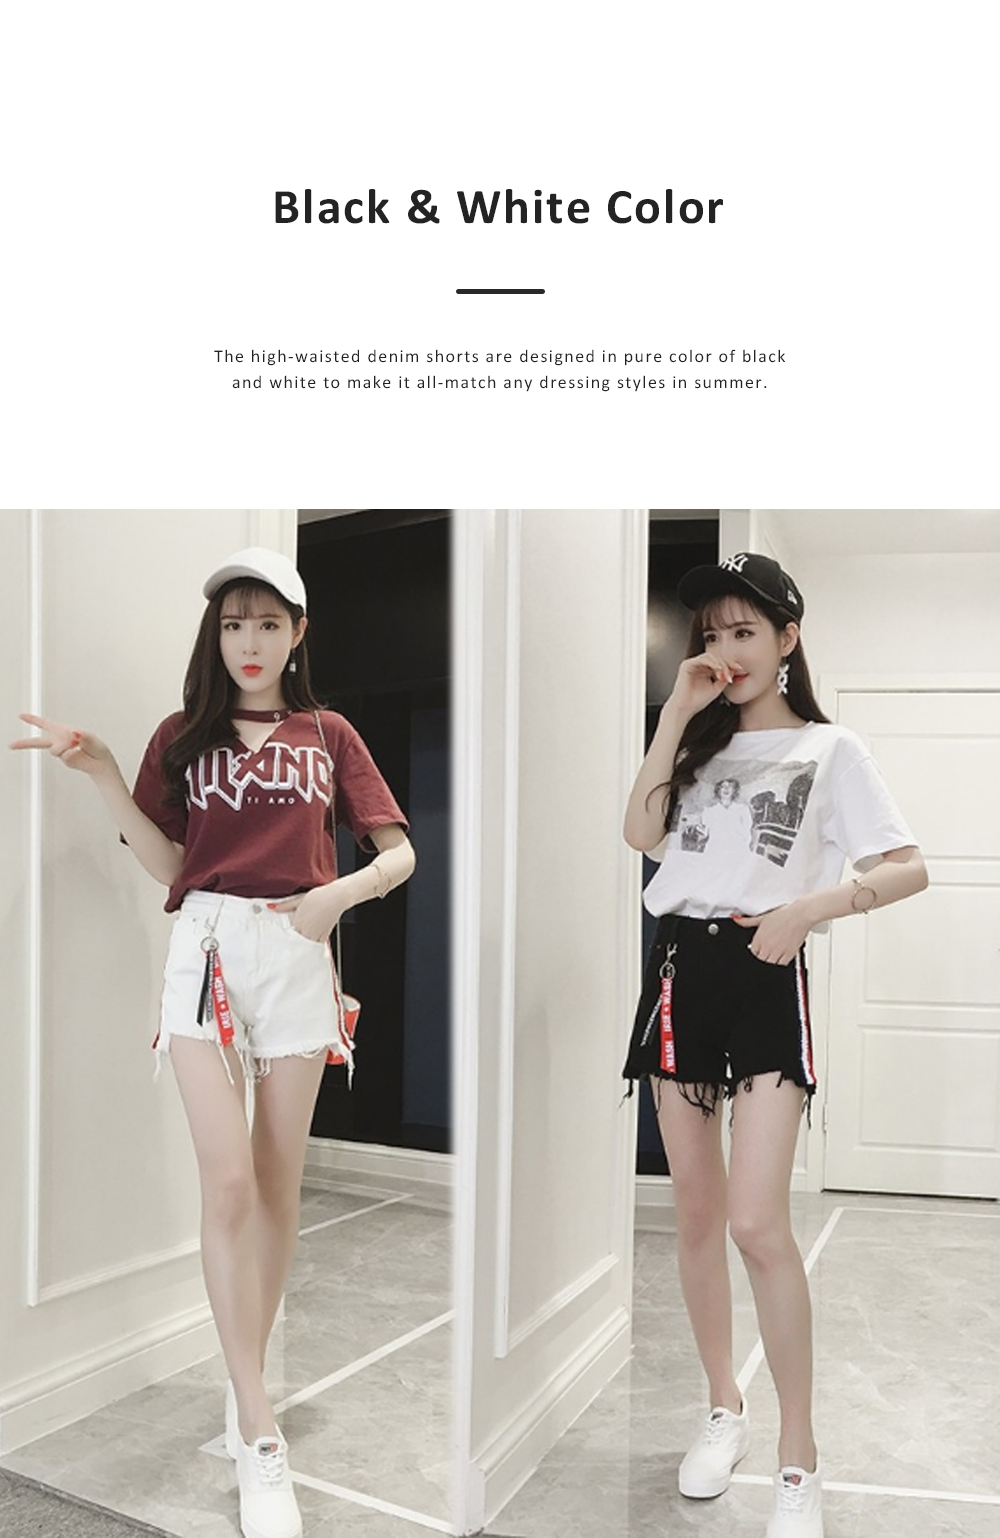 2019 High-waisted Denim Shorts Jeans Pants for Girl Students Wear Summer Loose Version Short Pants in Pure Black Color or White Color 5